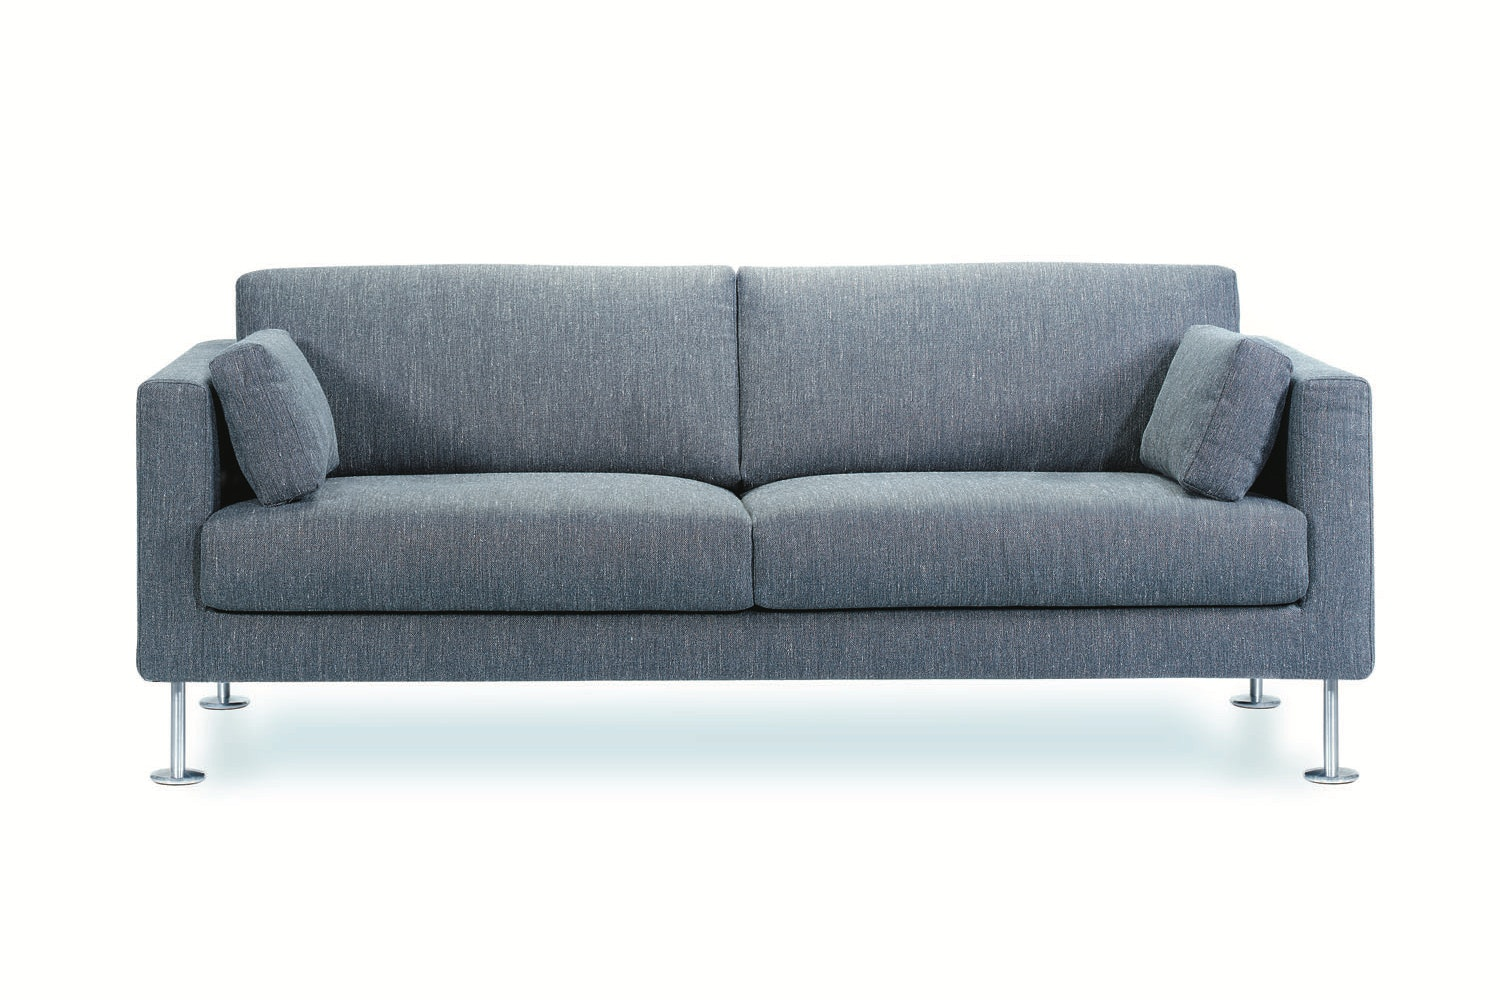 Park Sofa by Jasper Morrison for Vitra